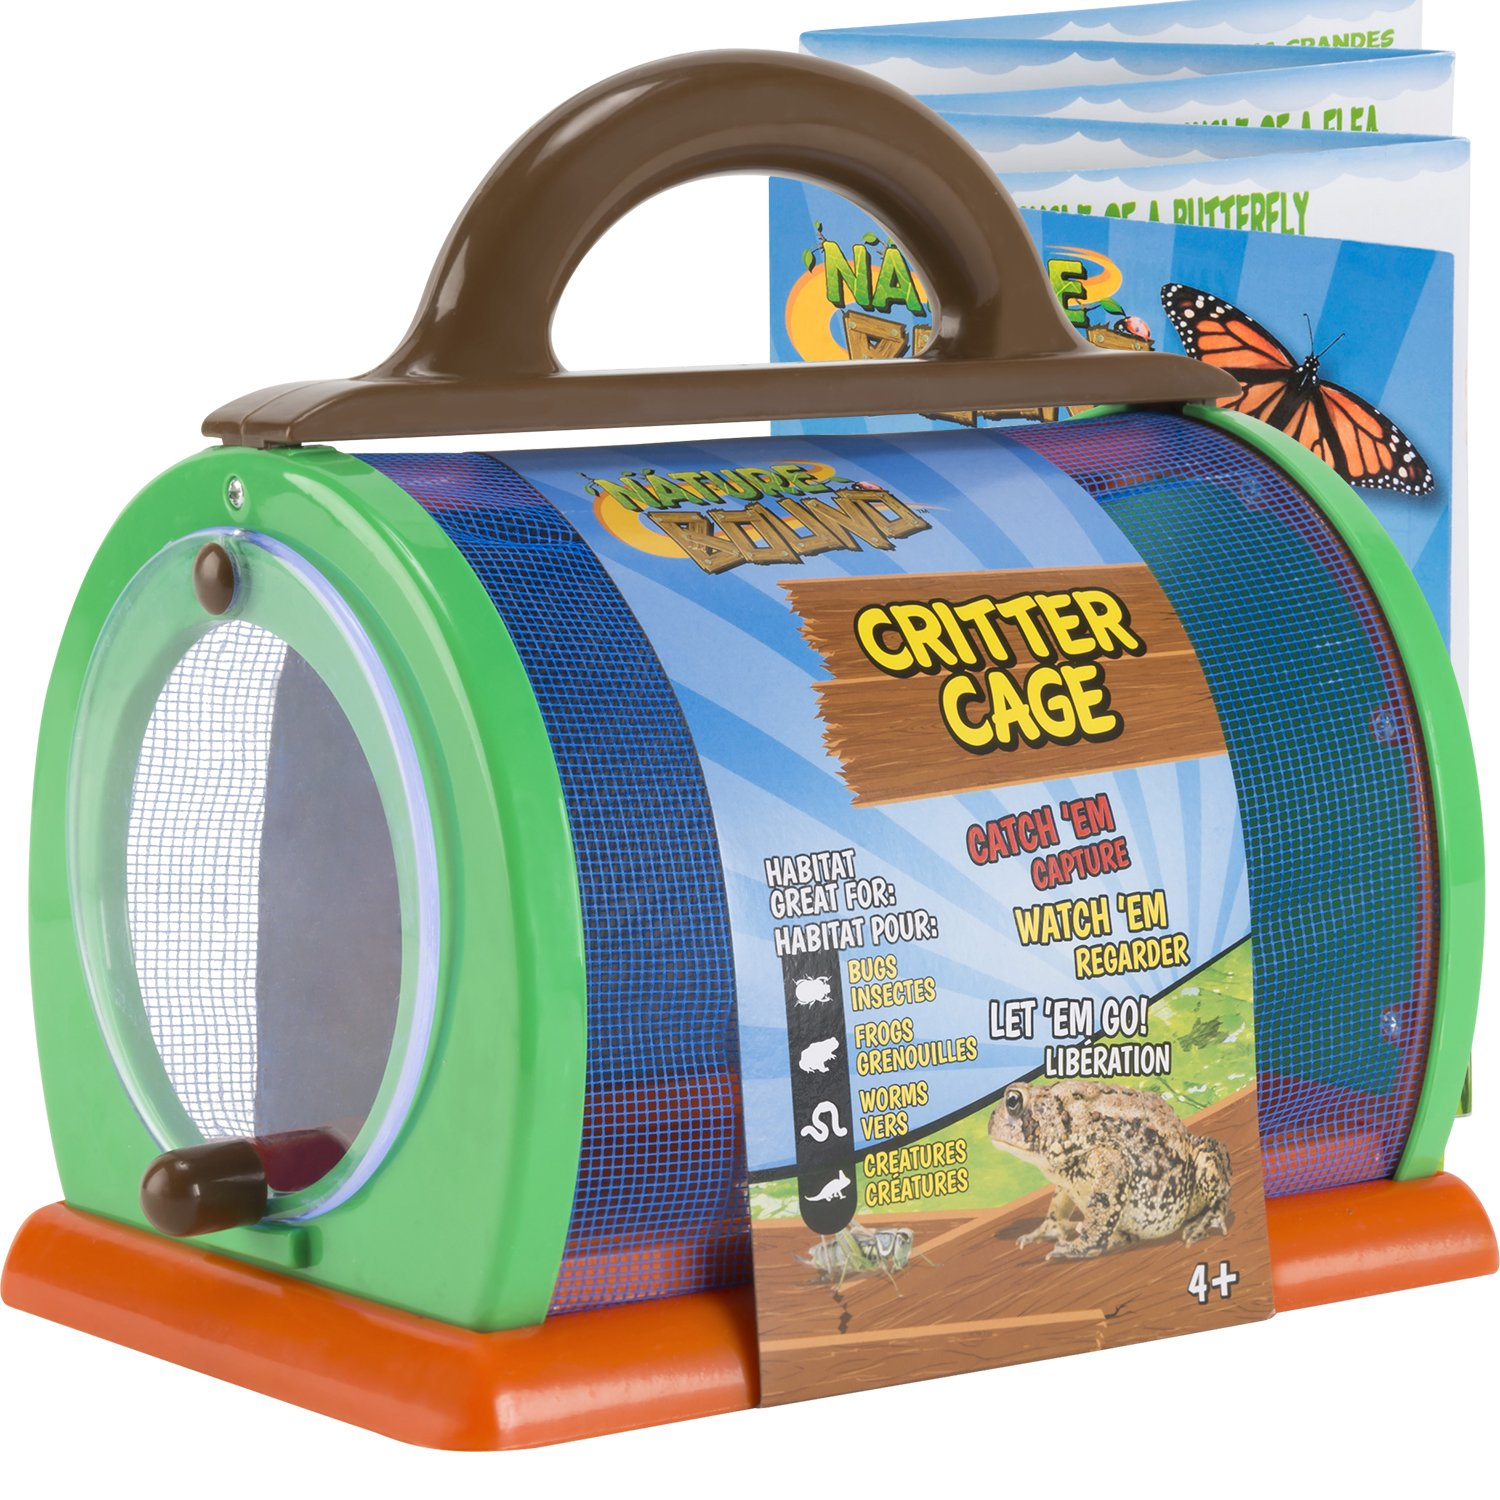 Nature Bound Critter Cage Bug Catcher Habitat Kit with Activity Booklet, Green, 8.5'' x 5.75'' x 8''